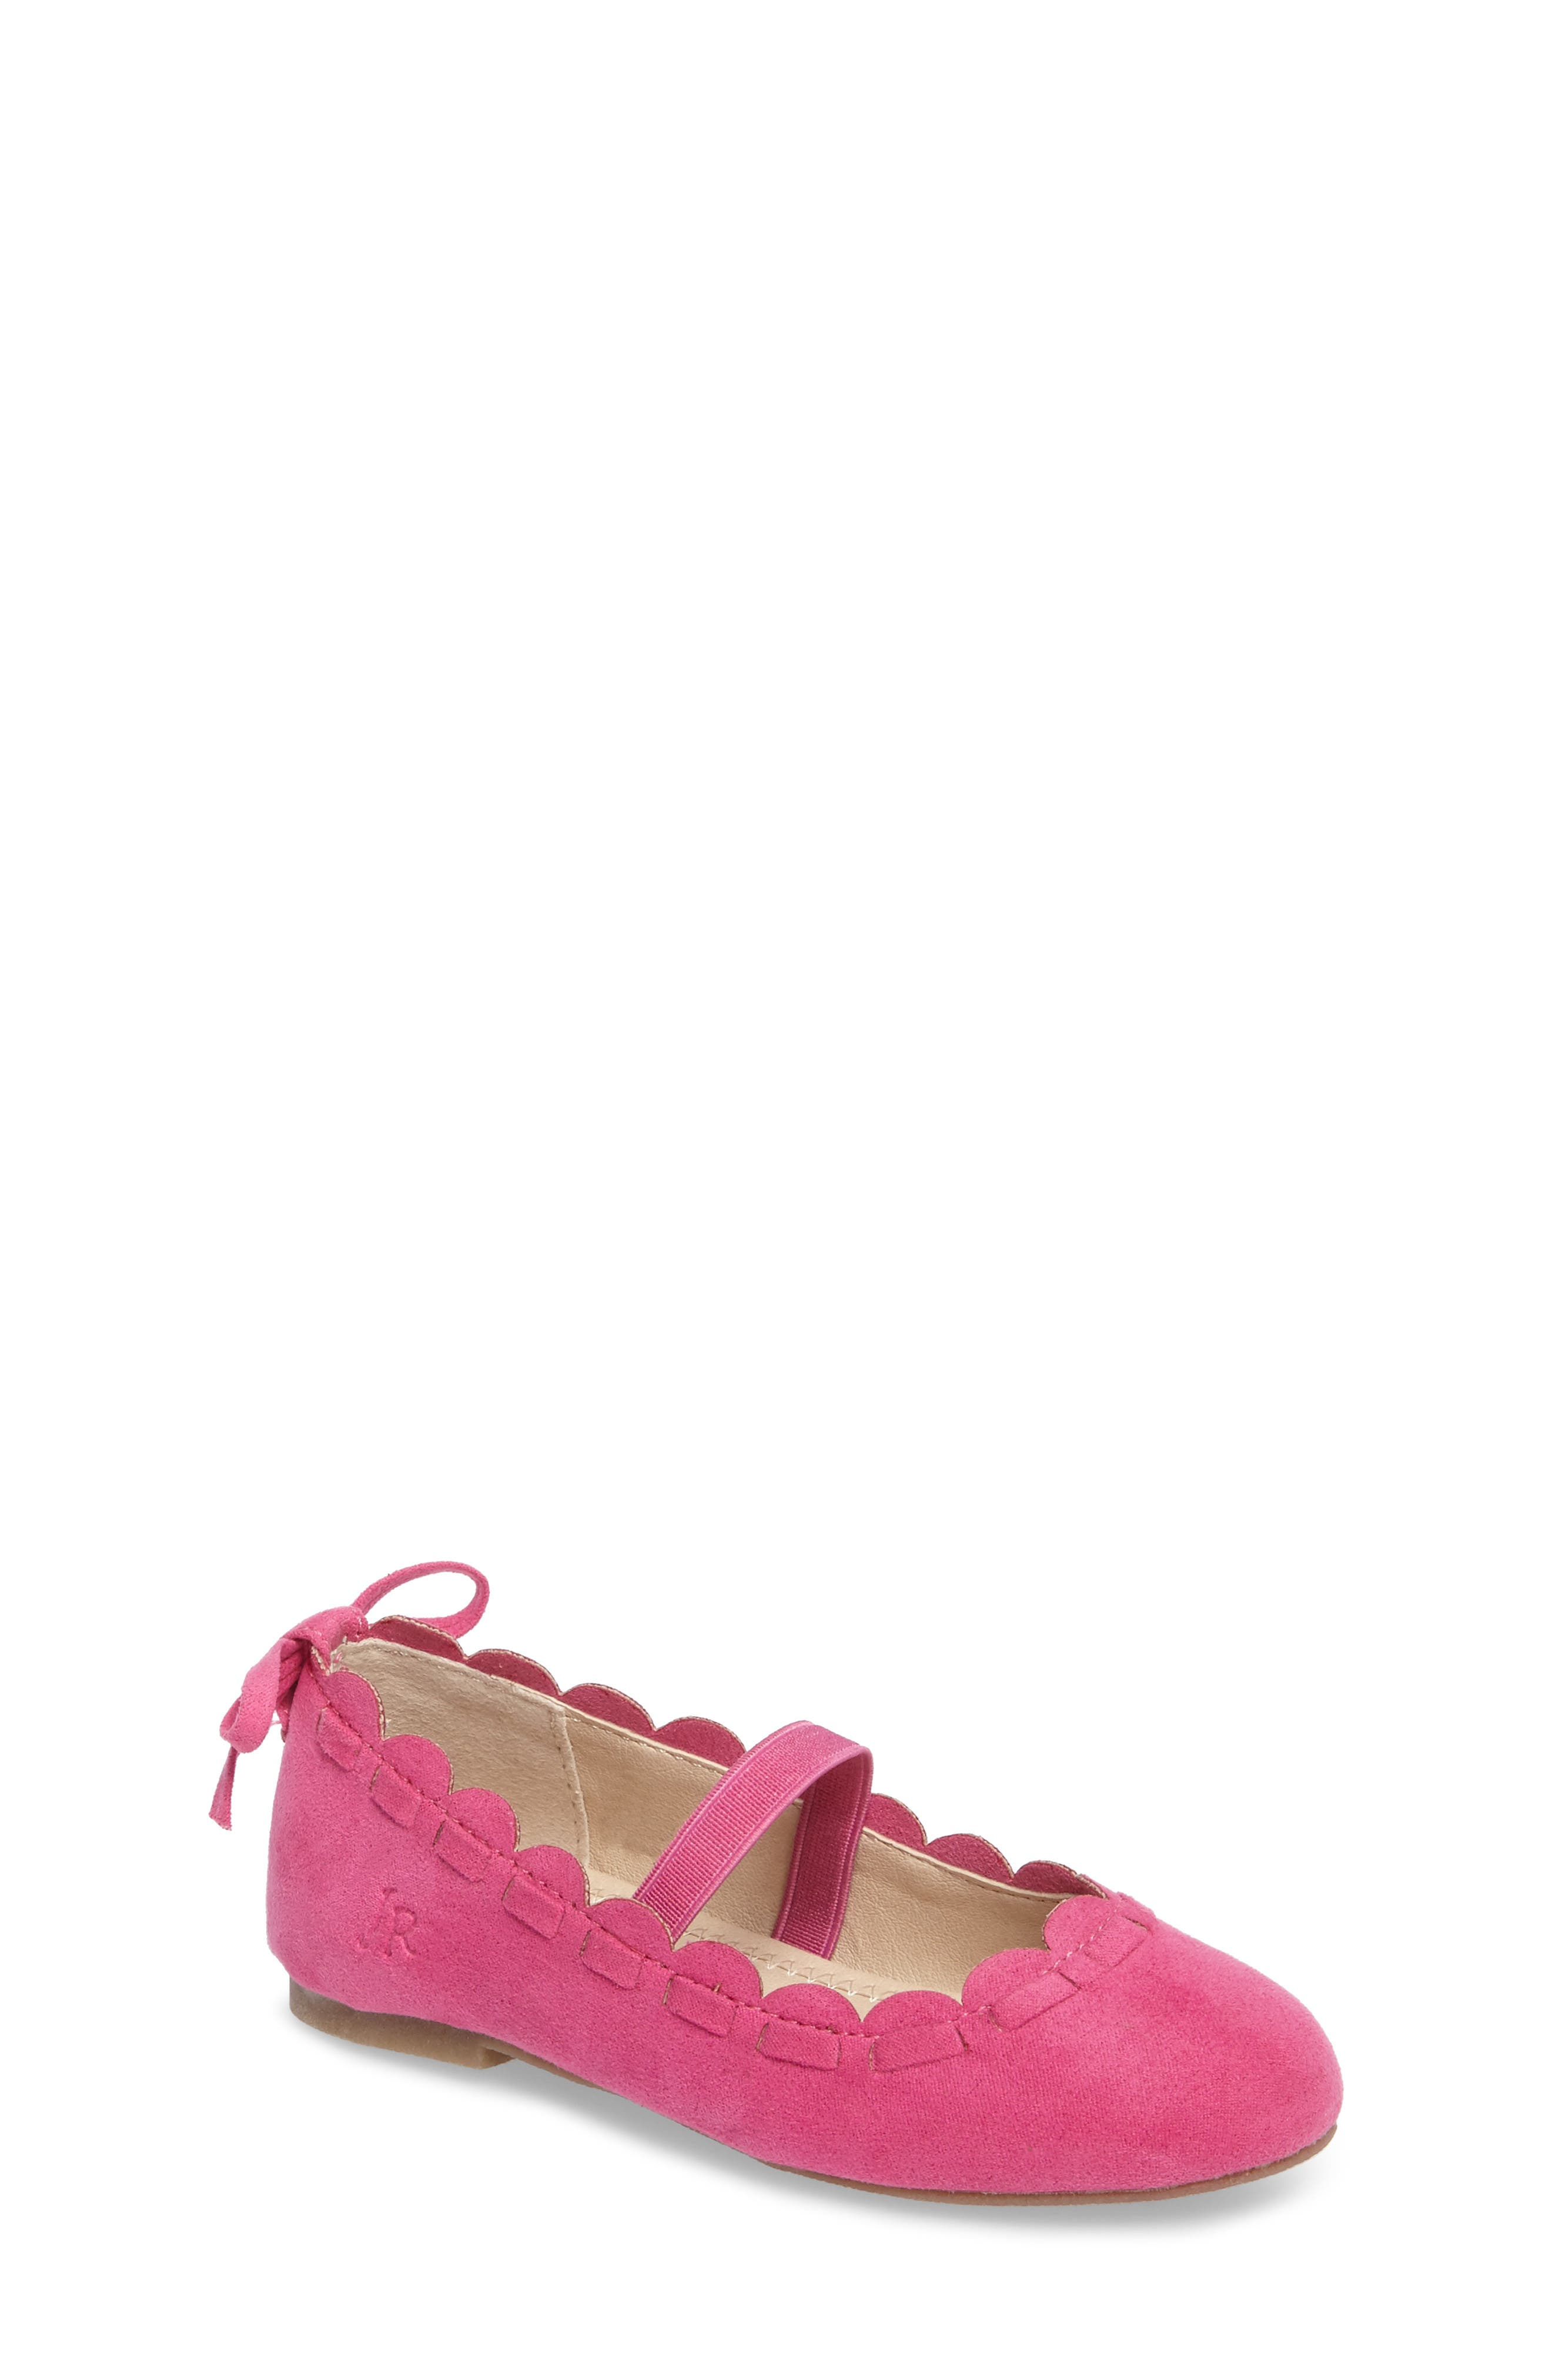 Main Image - Jack Rogers Little Miss Lucie Scalloped Mary Jane Flat (Walker & Toddler)